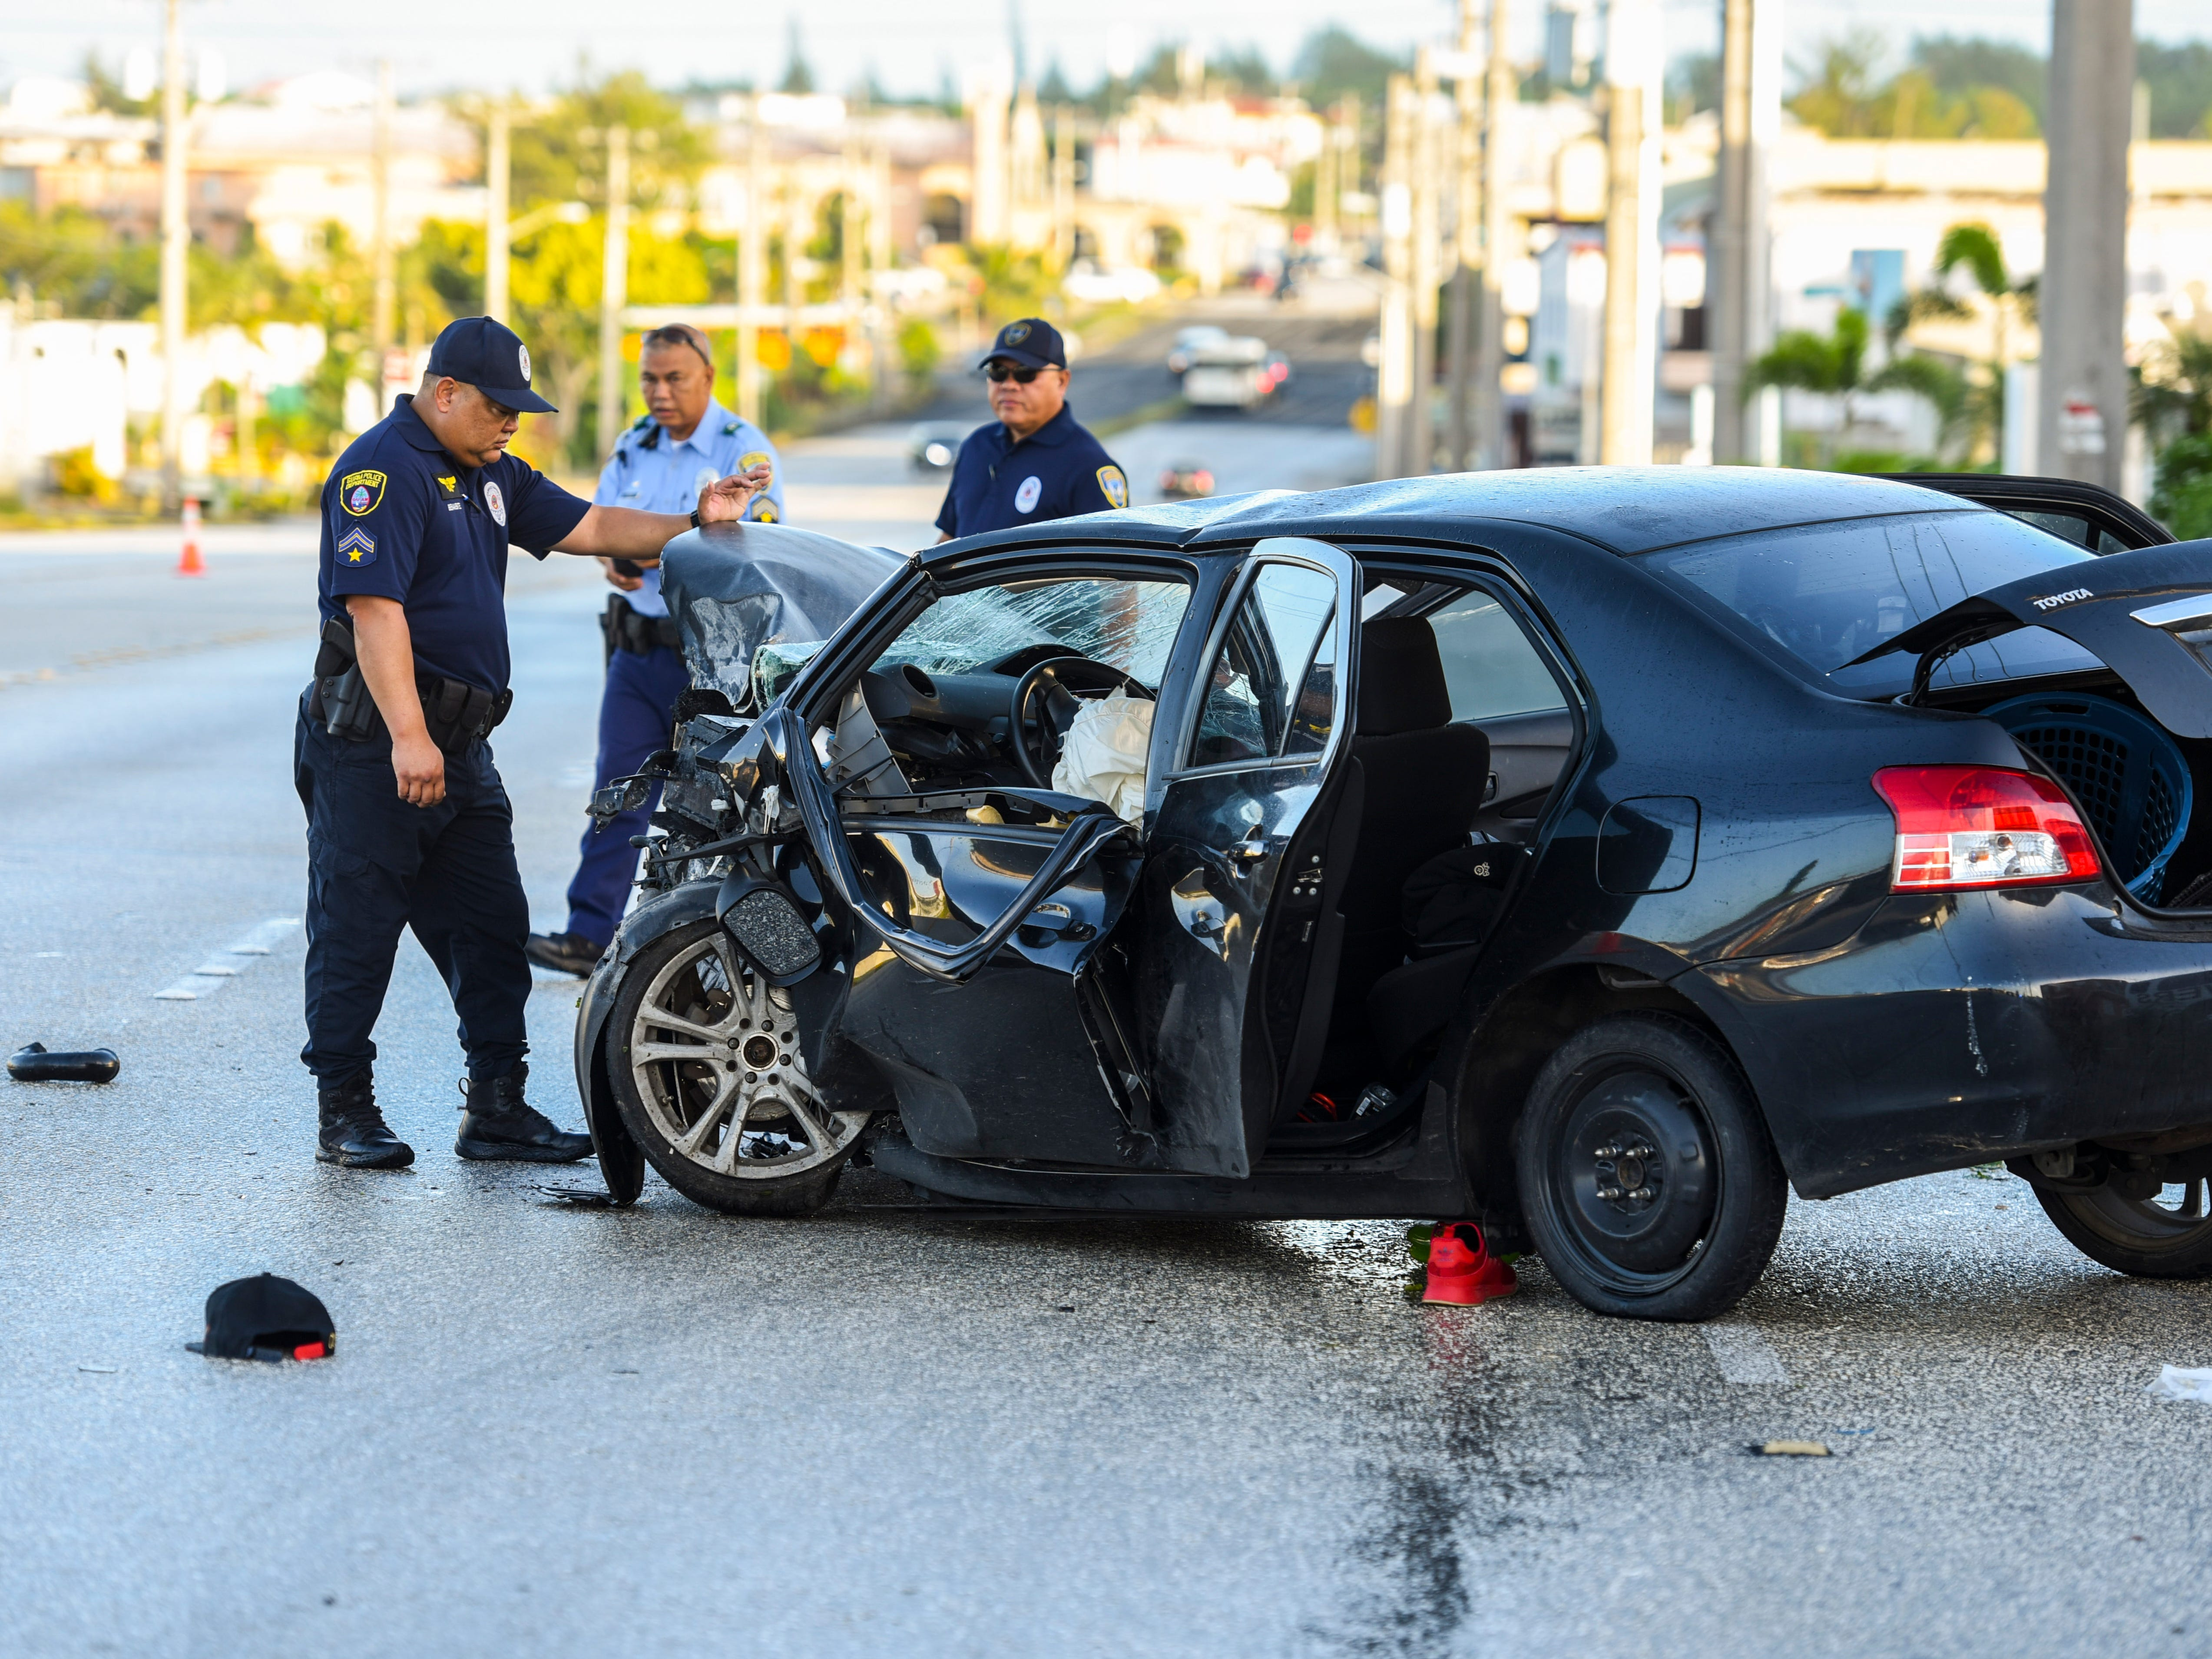 Guam Police Department Officer Tom Benavente inspects the crushed engine compartment of a black Toyota Yaris involved in a fatal auto-off roadway incident, near the JNS Divers shop on Chalan San Antonio, as he and other Highway Patrol Division officers investigate the crash in Tamuning on Wednesday, Dec. 5, 2018. The accident claimed the life of the driver, who was the sole occupant, after the vehicle collided into a concrete utility pole on the side of the roadway. The man's death marks the 22nd fatality and the 20th fatal crash that has occured this year.